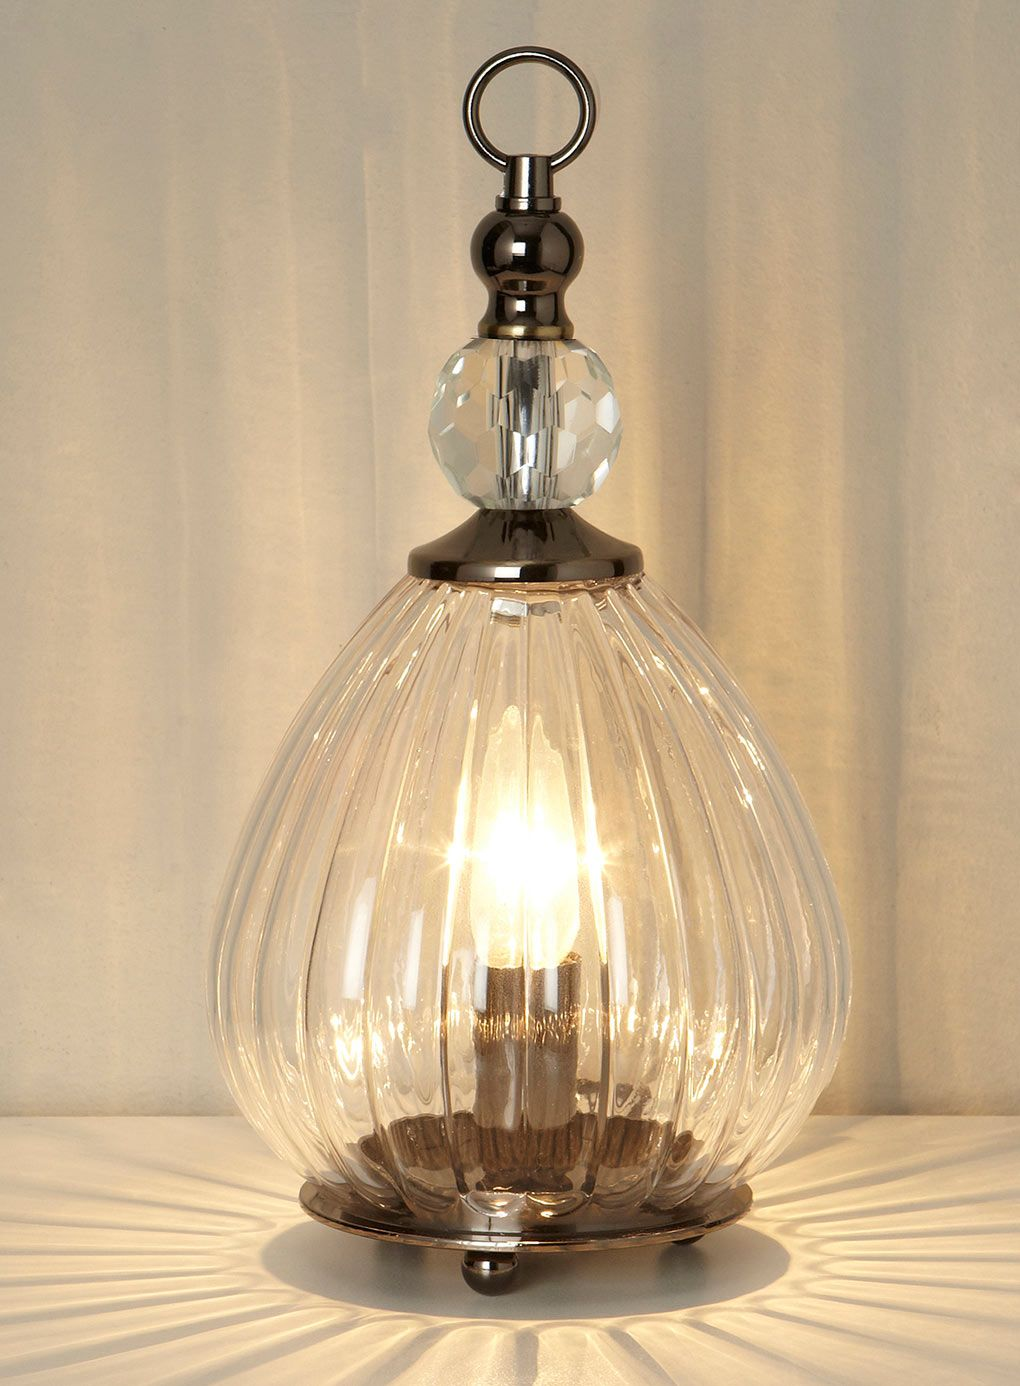 Mirielle table lamp bhs interiors extension pinterest mirielle table lamp bhs mozeypictures Image collections